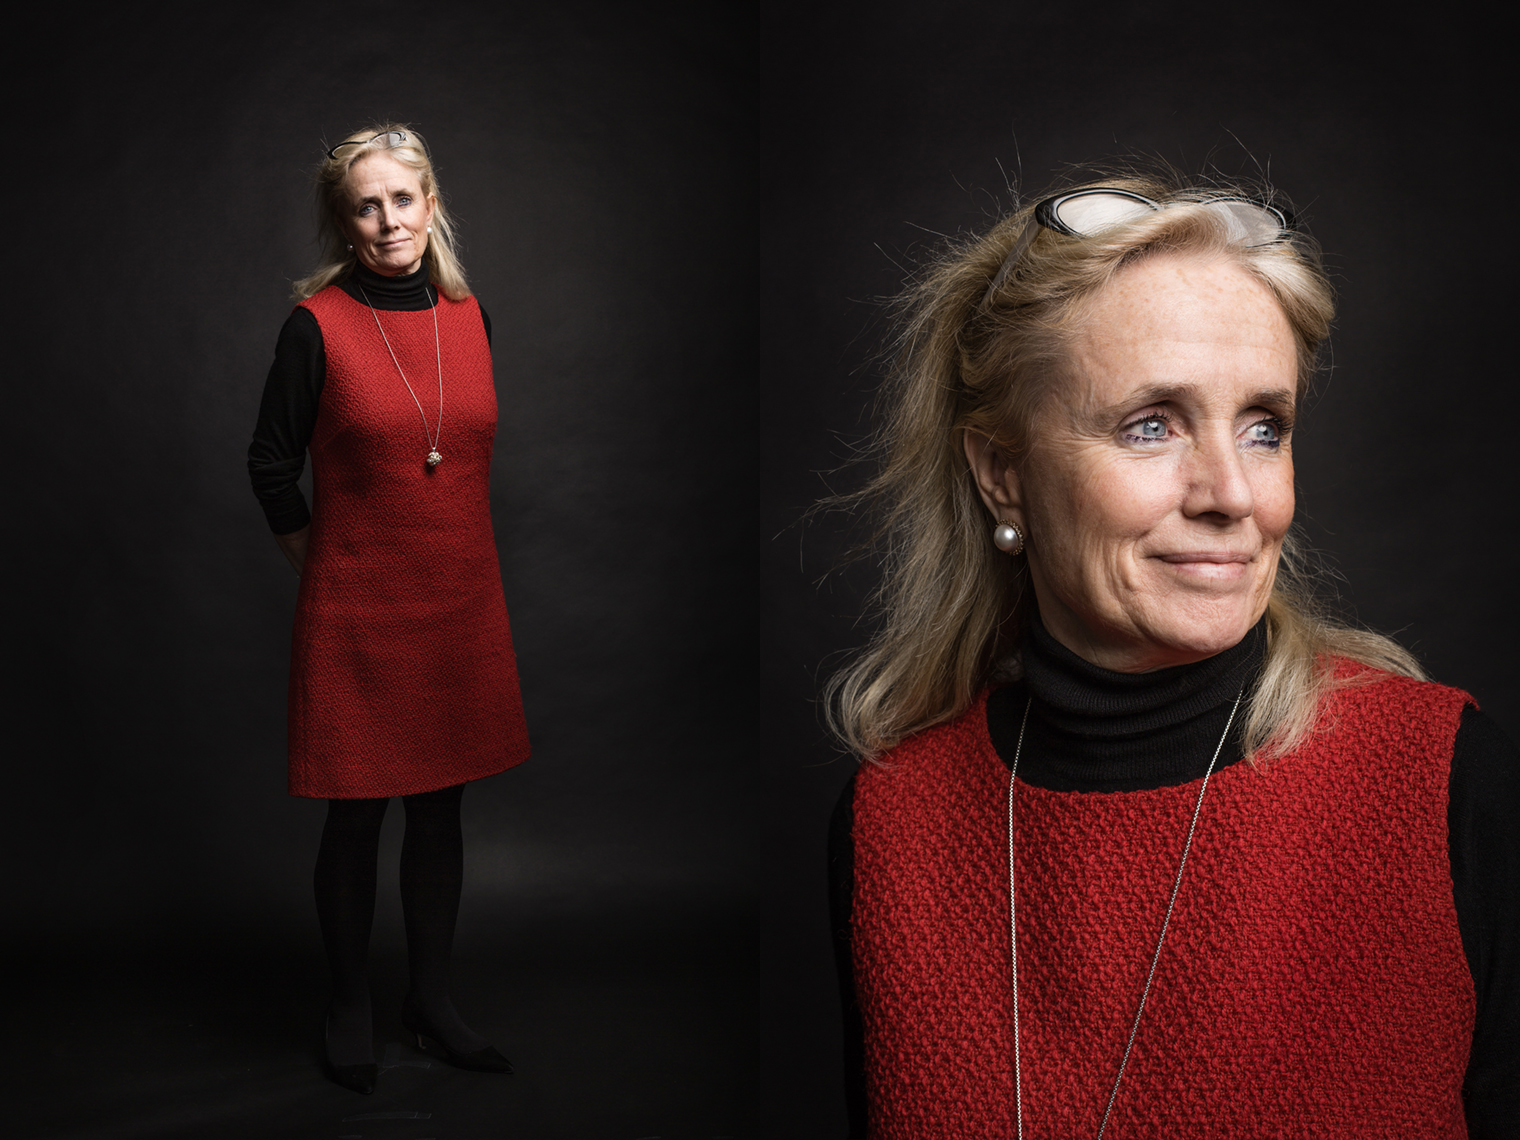 DEBBIE DINGELL, (MI 12th, D) - Photographed for Politico  • Jason Grow Photography